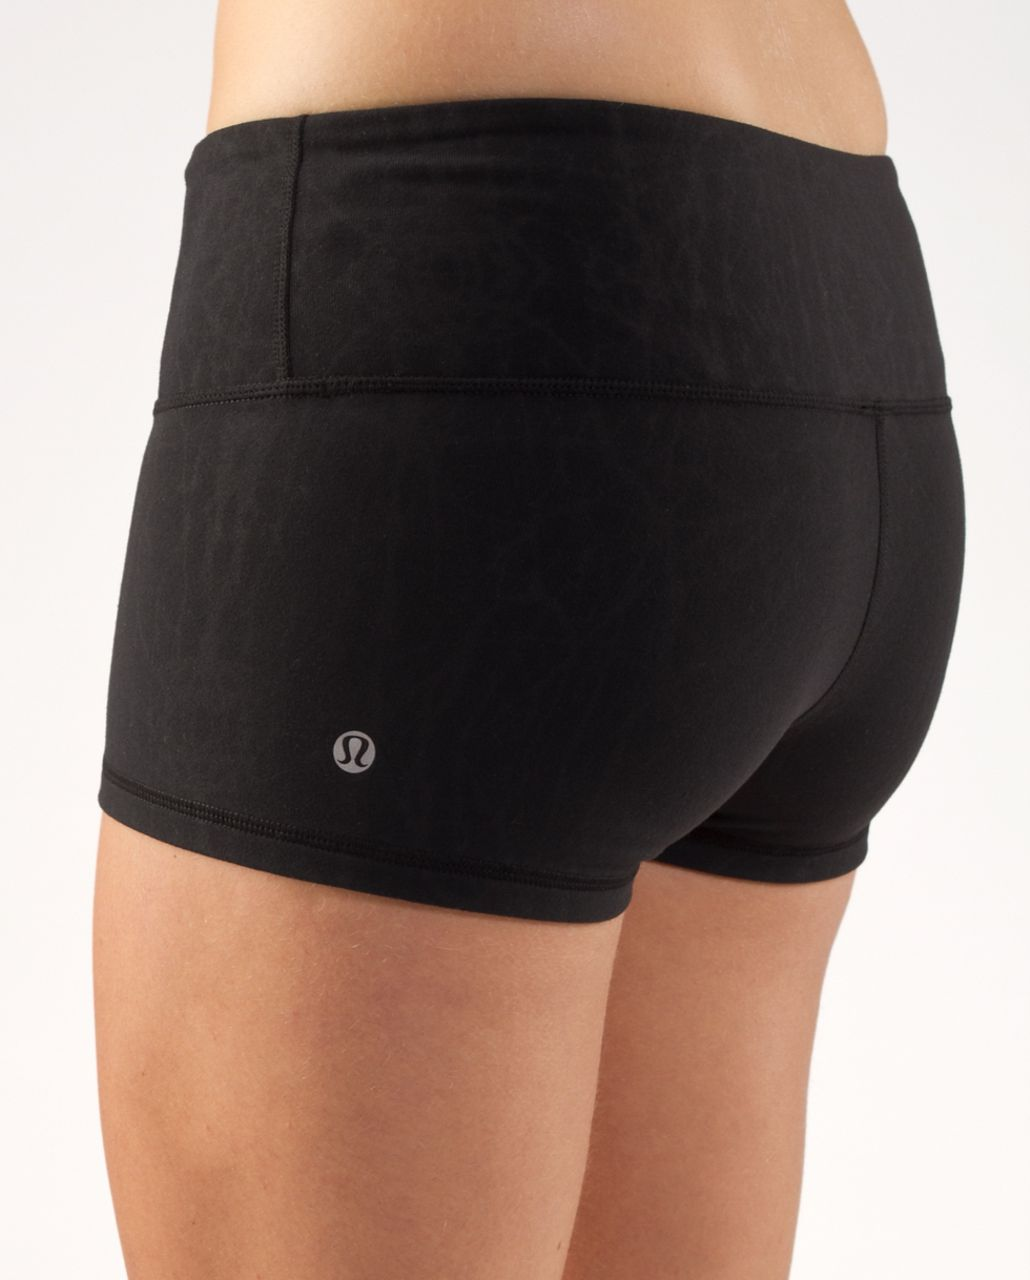 Lululemon Boogie Short - Black Nesting Black Bird Embossed